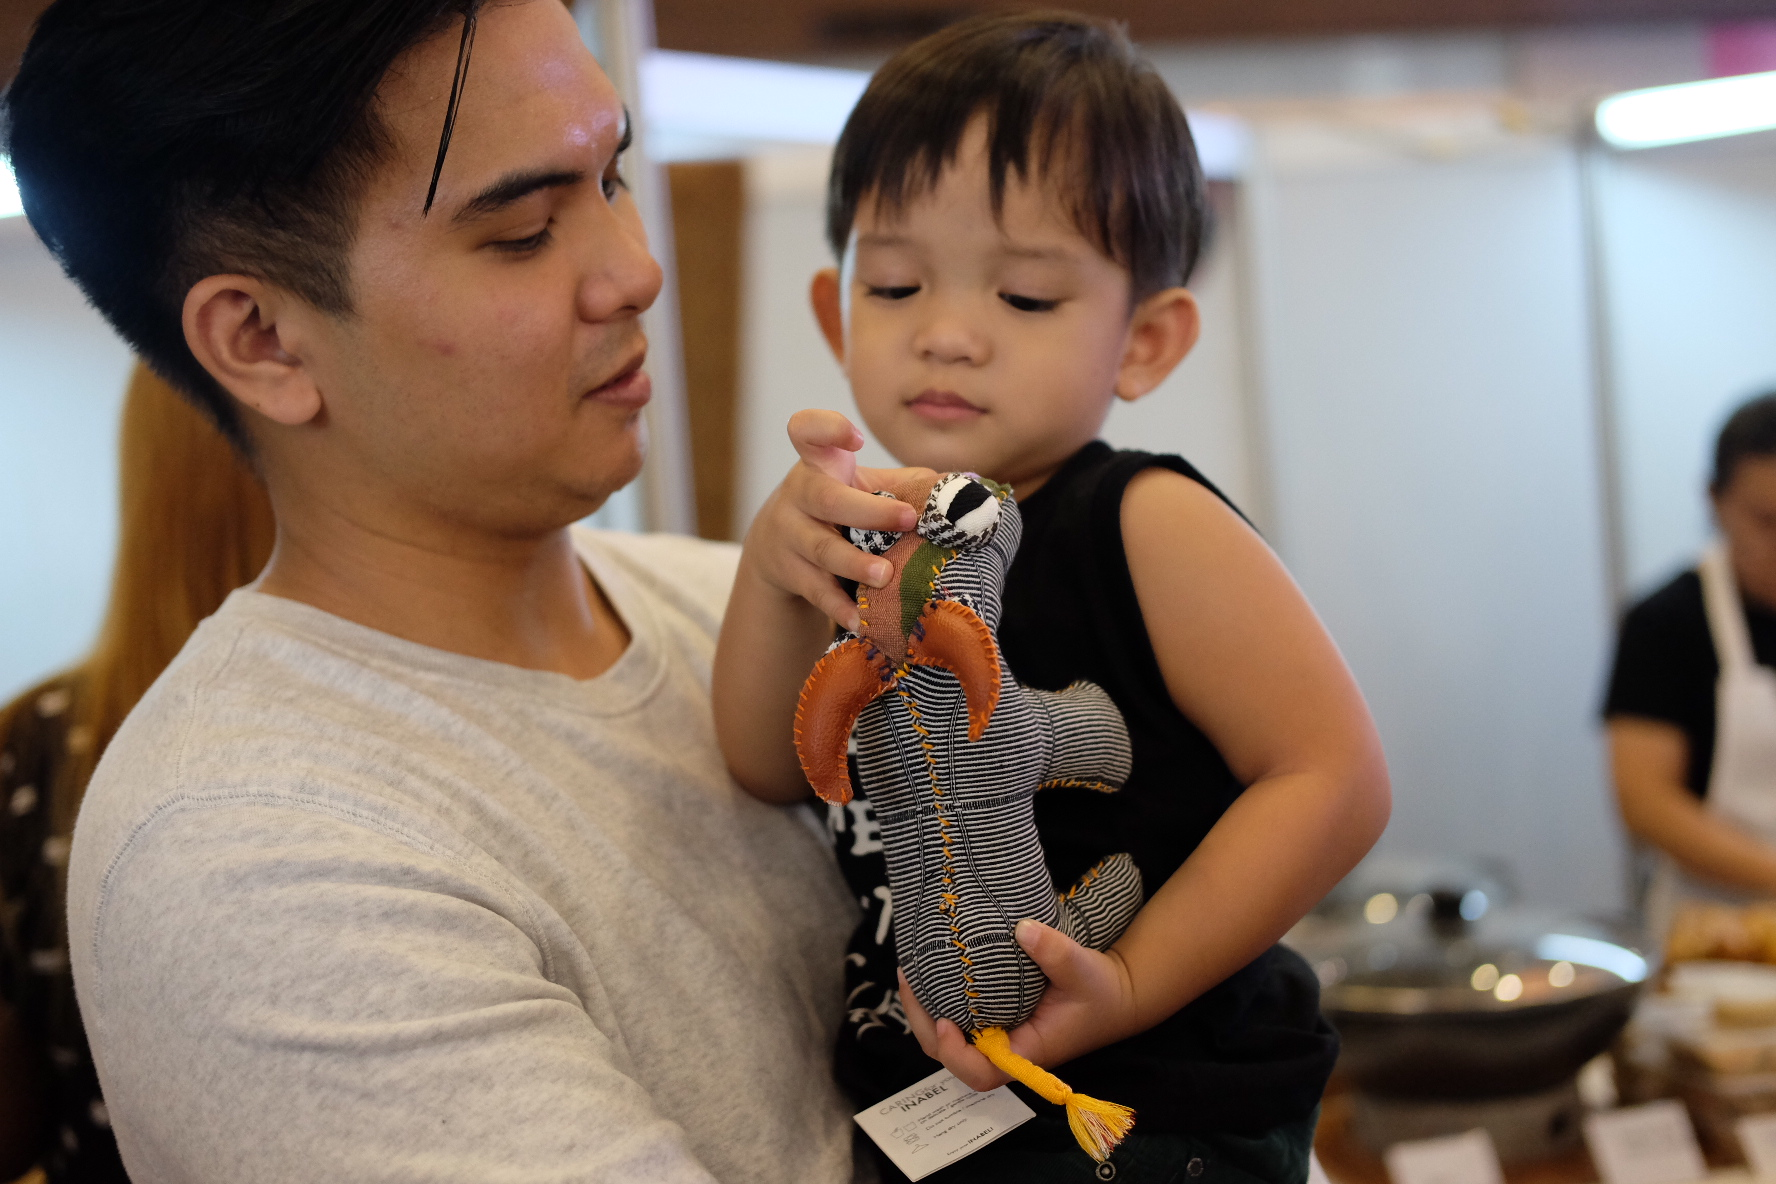 Ynigo's find was thiscarabao plushie! - Doesn't it look so cute?